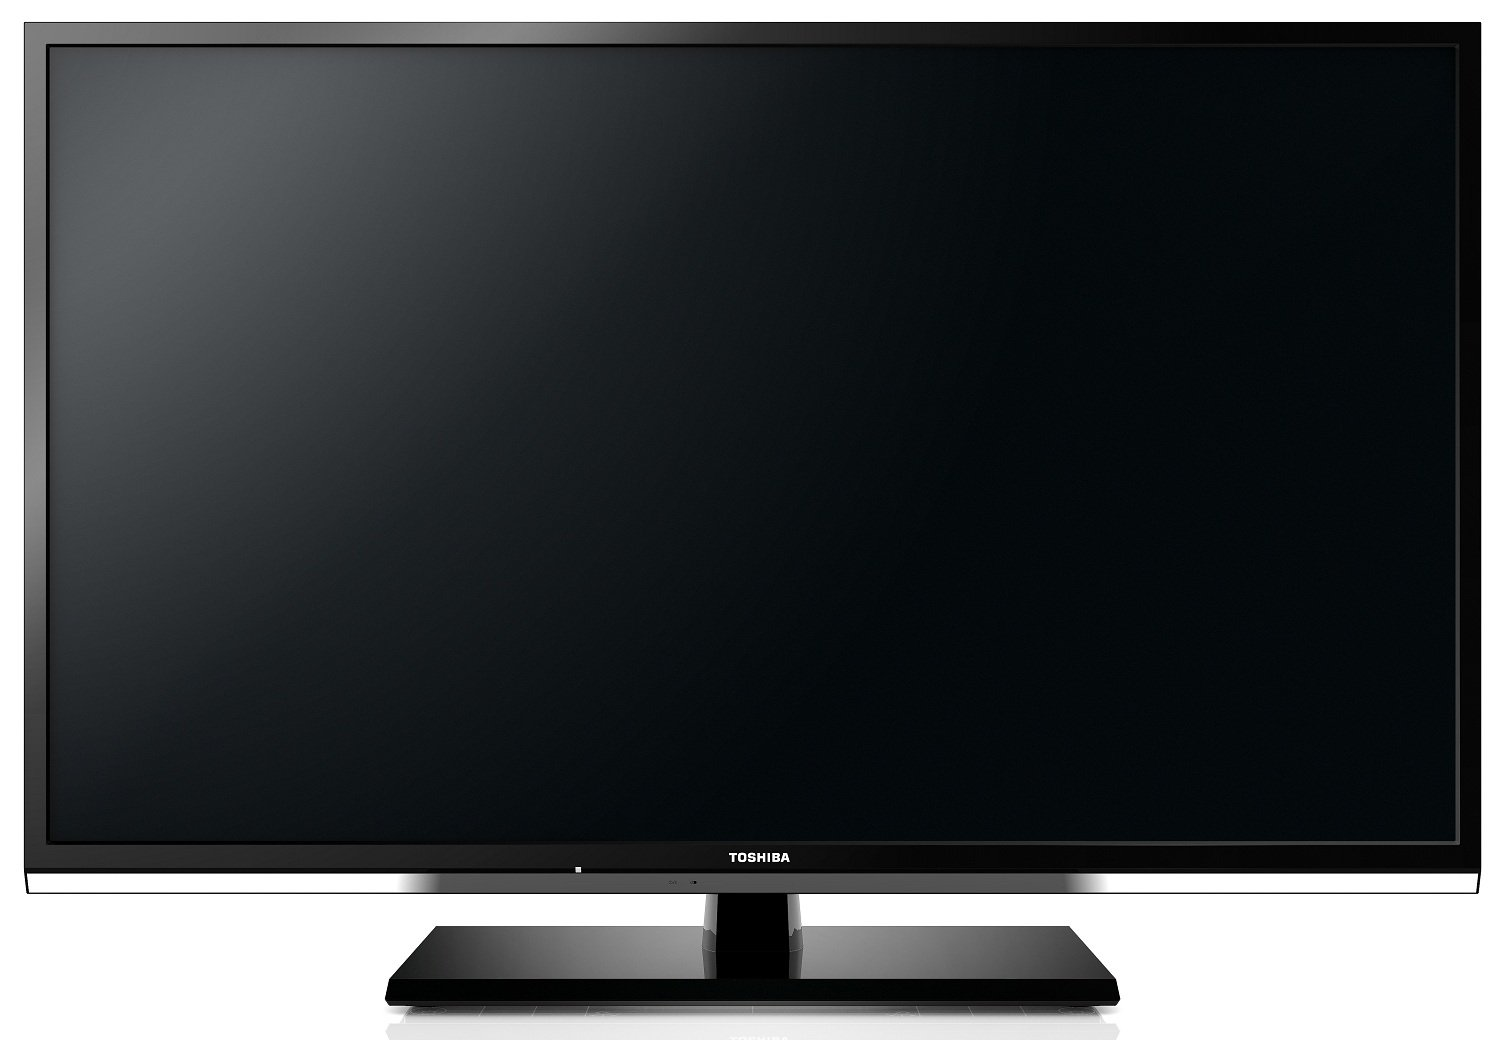 toshiba 40rl933g 101 6 cm 40 zoll fernseher full hd. Black Bedroom Furniture Sets. Home Design Ideas